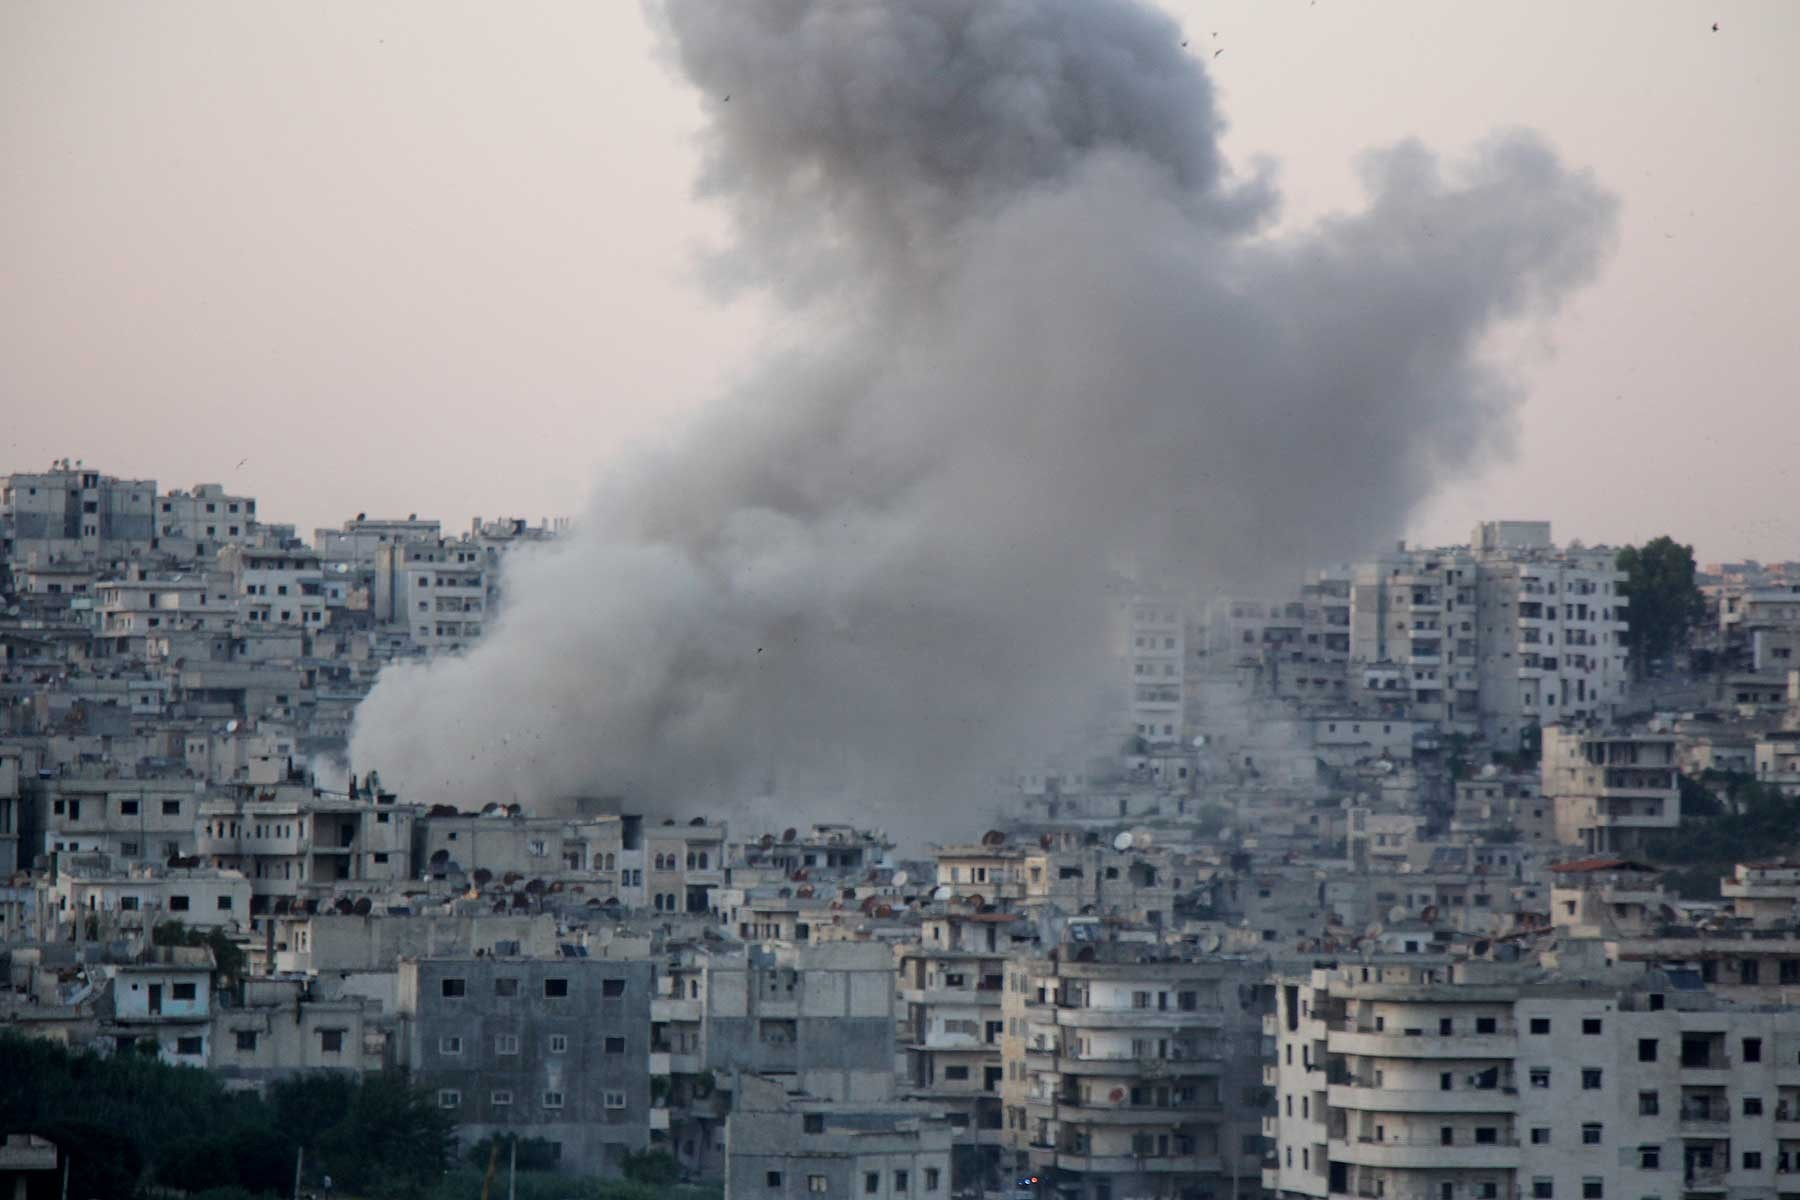 Idlib boiling up on our doorstep